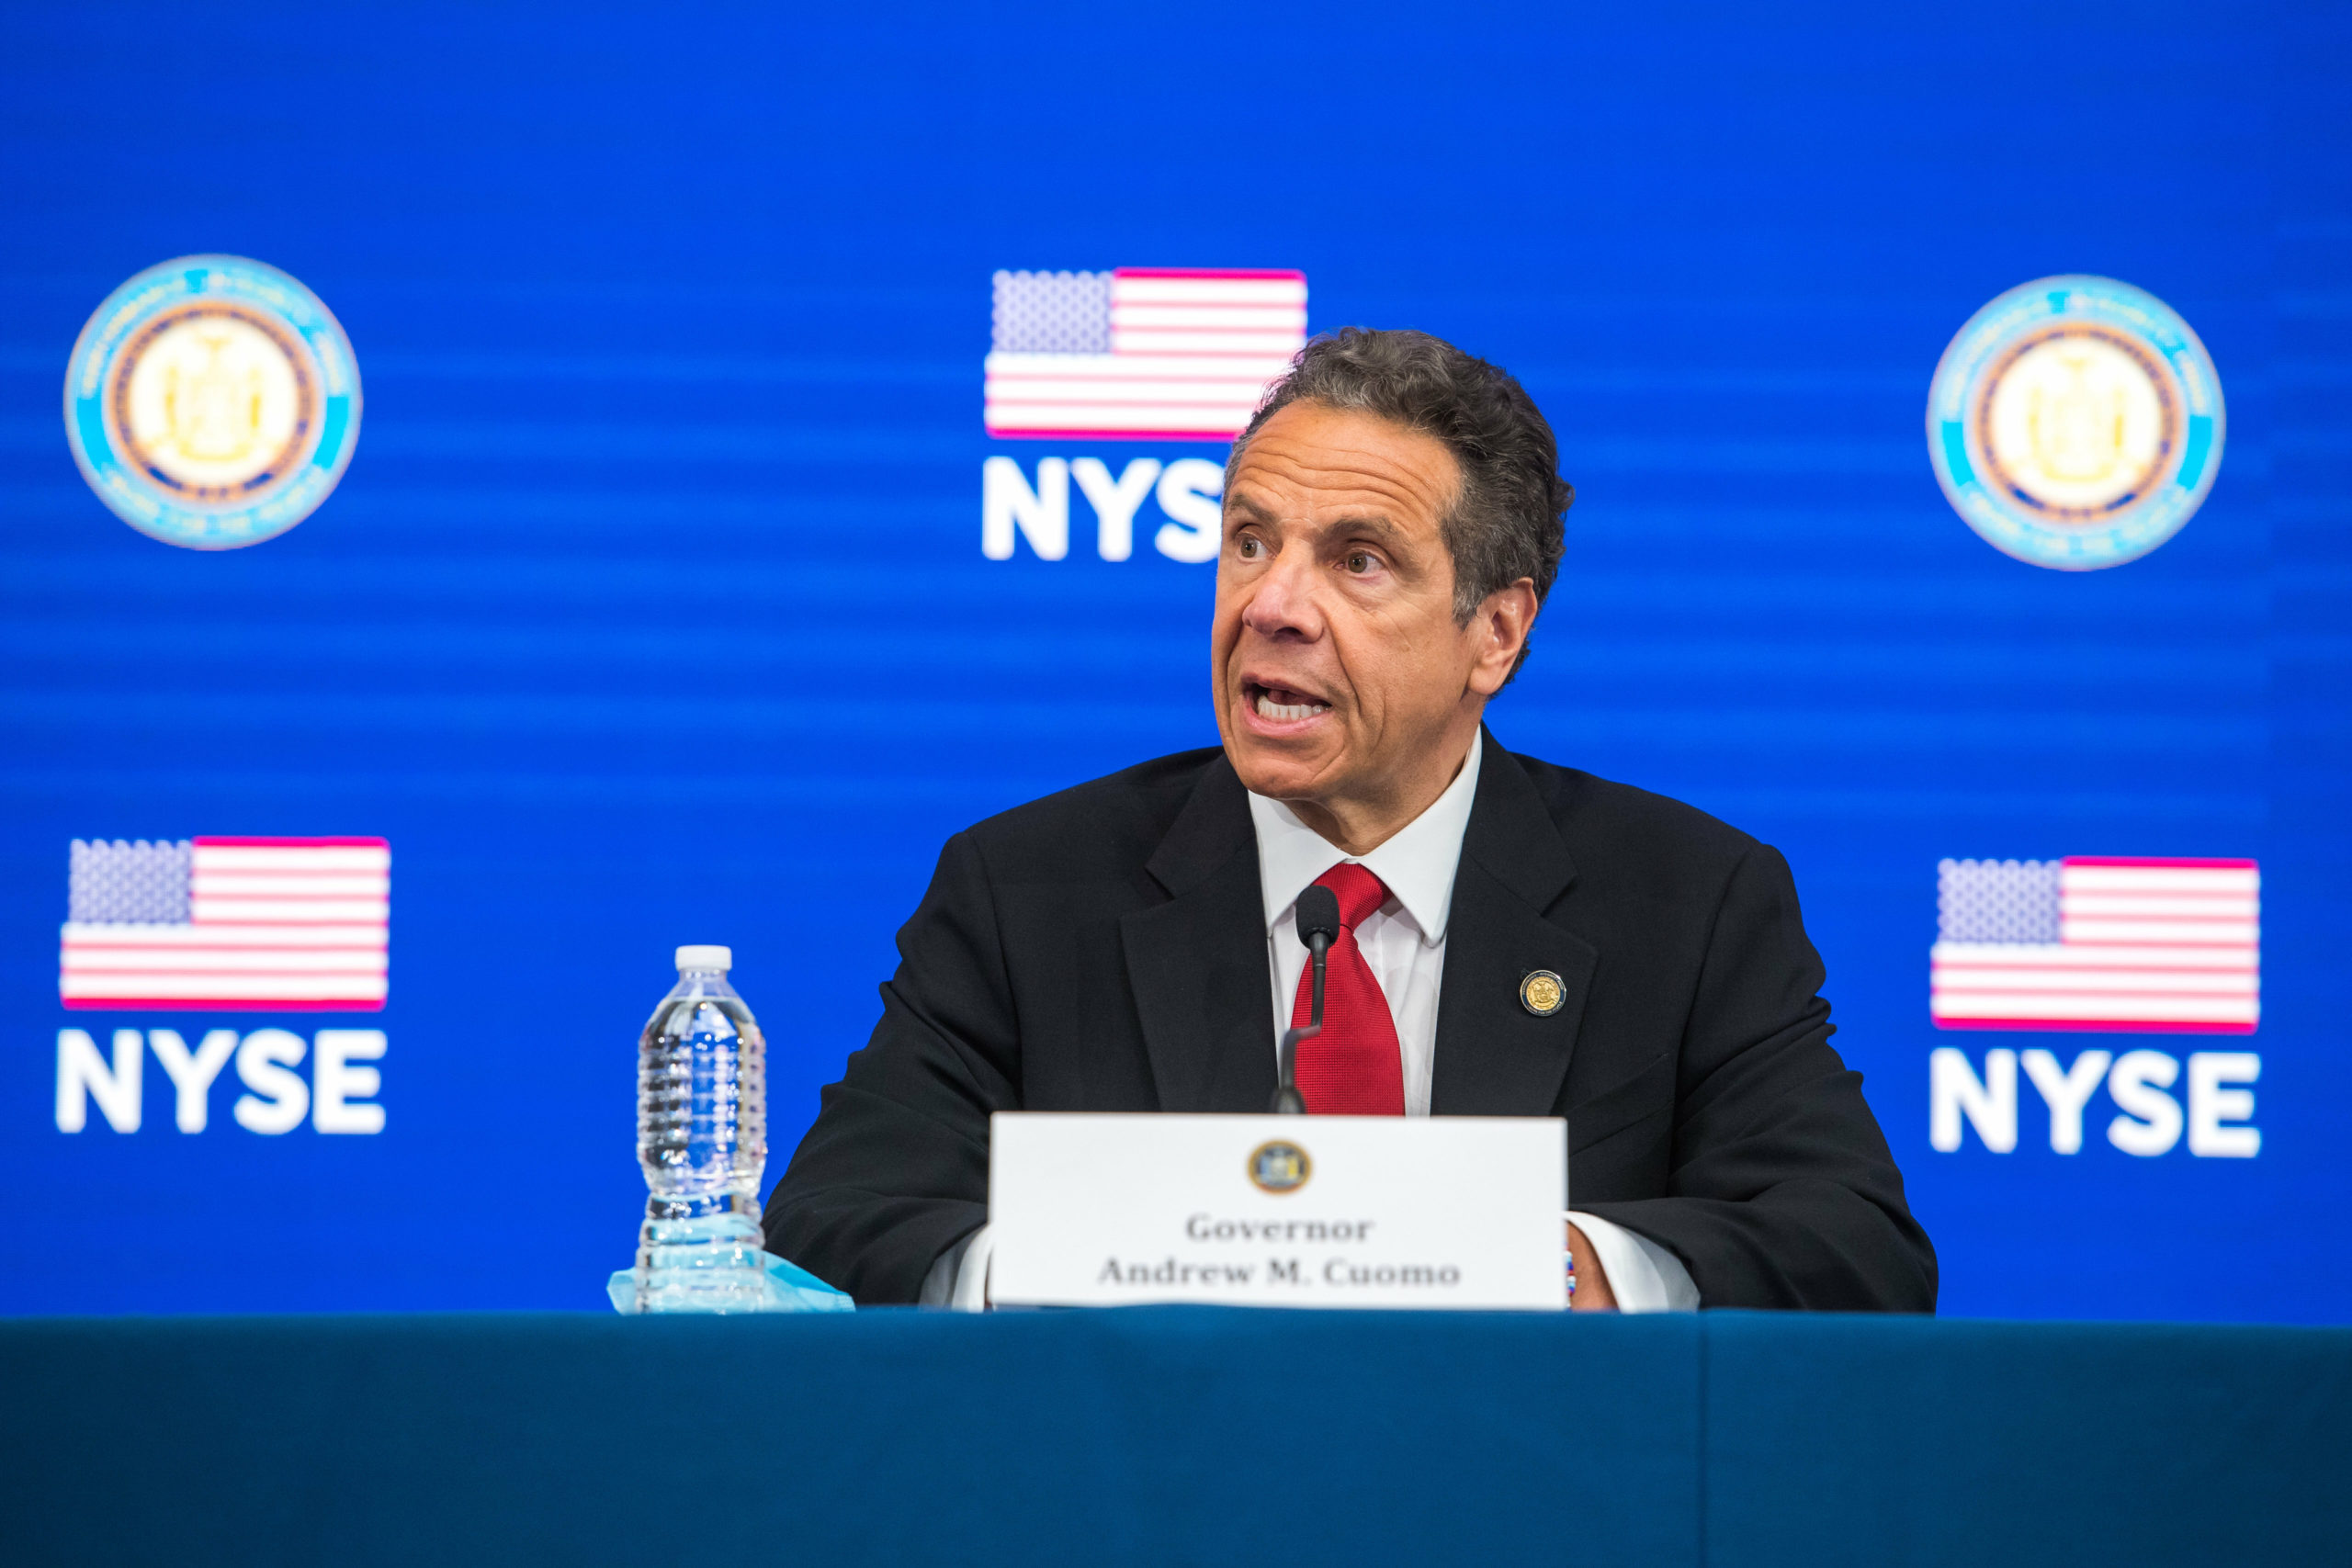 Offering his daily update from the New York Stock Exchange on Tuesday, Governor Andrew Cuomo said Long Island could begin reopening on Wednesday.